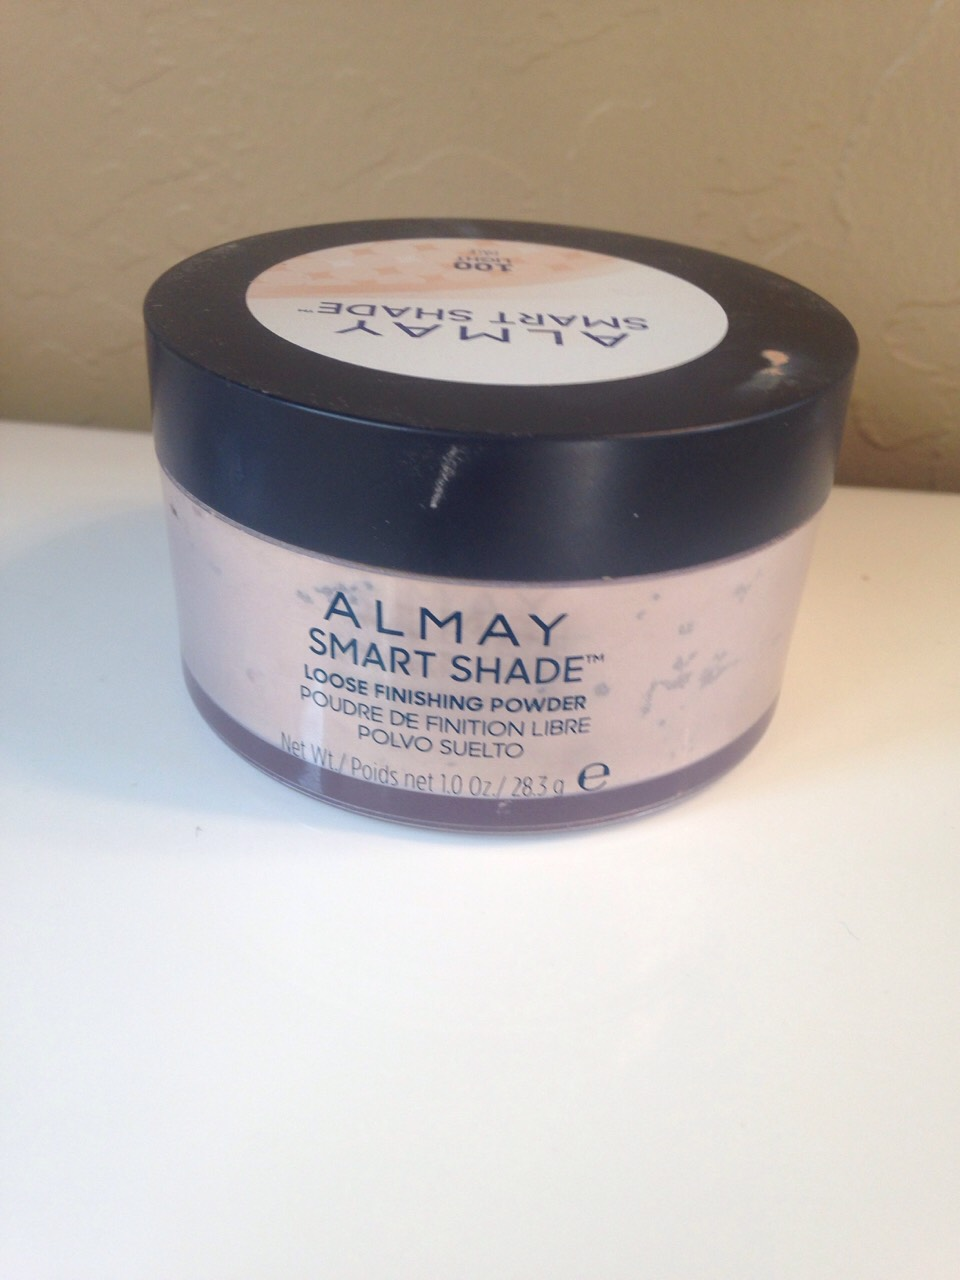 Next, I Use Almay Smart Shade Loose Finish Powder. It Feels Great And Doesn't Weigh Down. I Prefer This Over HD Powder!